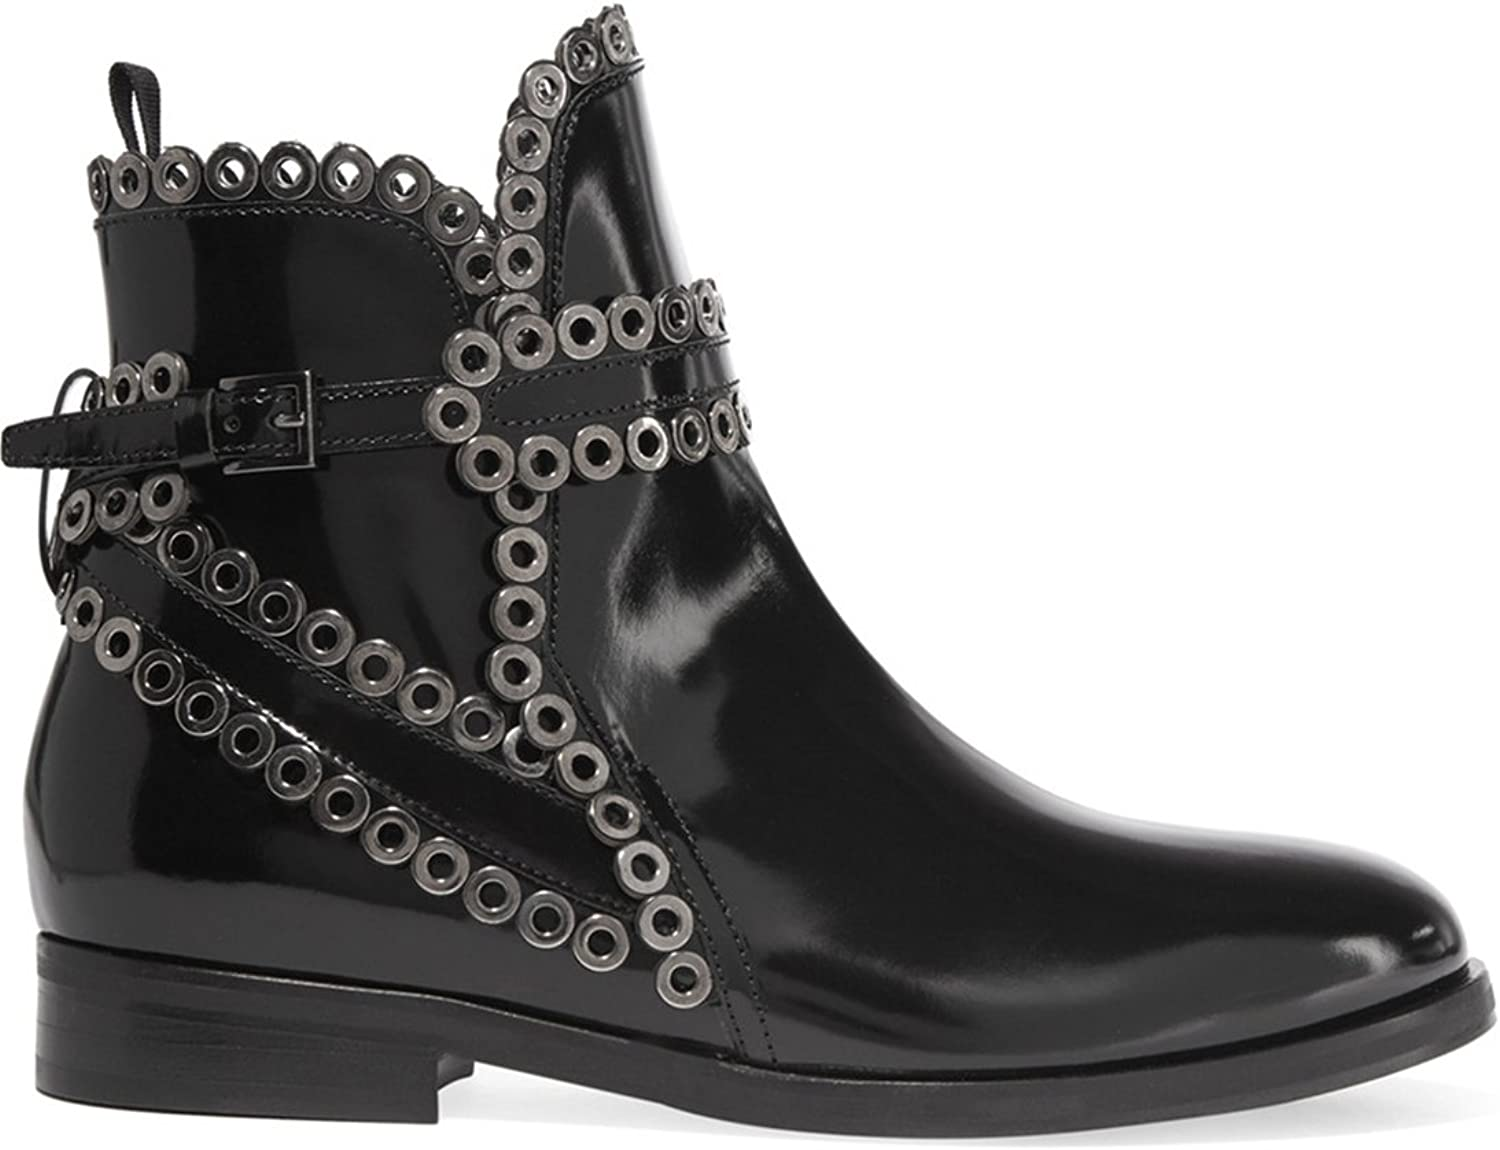 TDA Women's Fashion Gladiator Leather Casual Ankle Boots